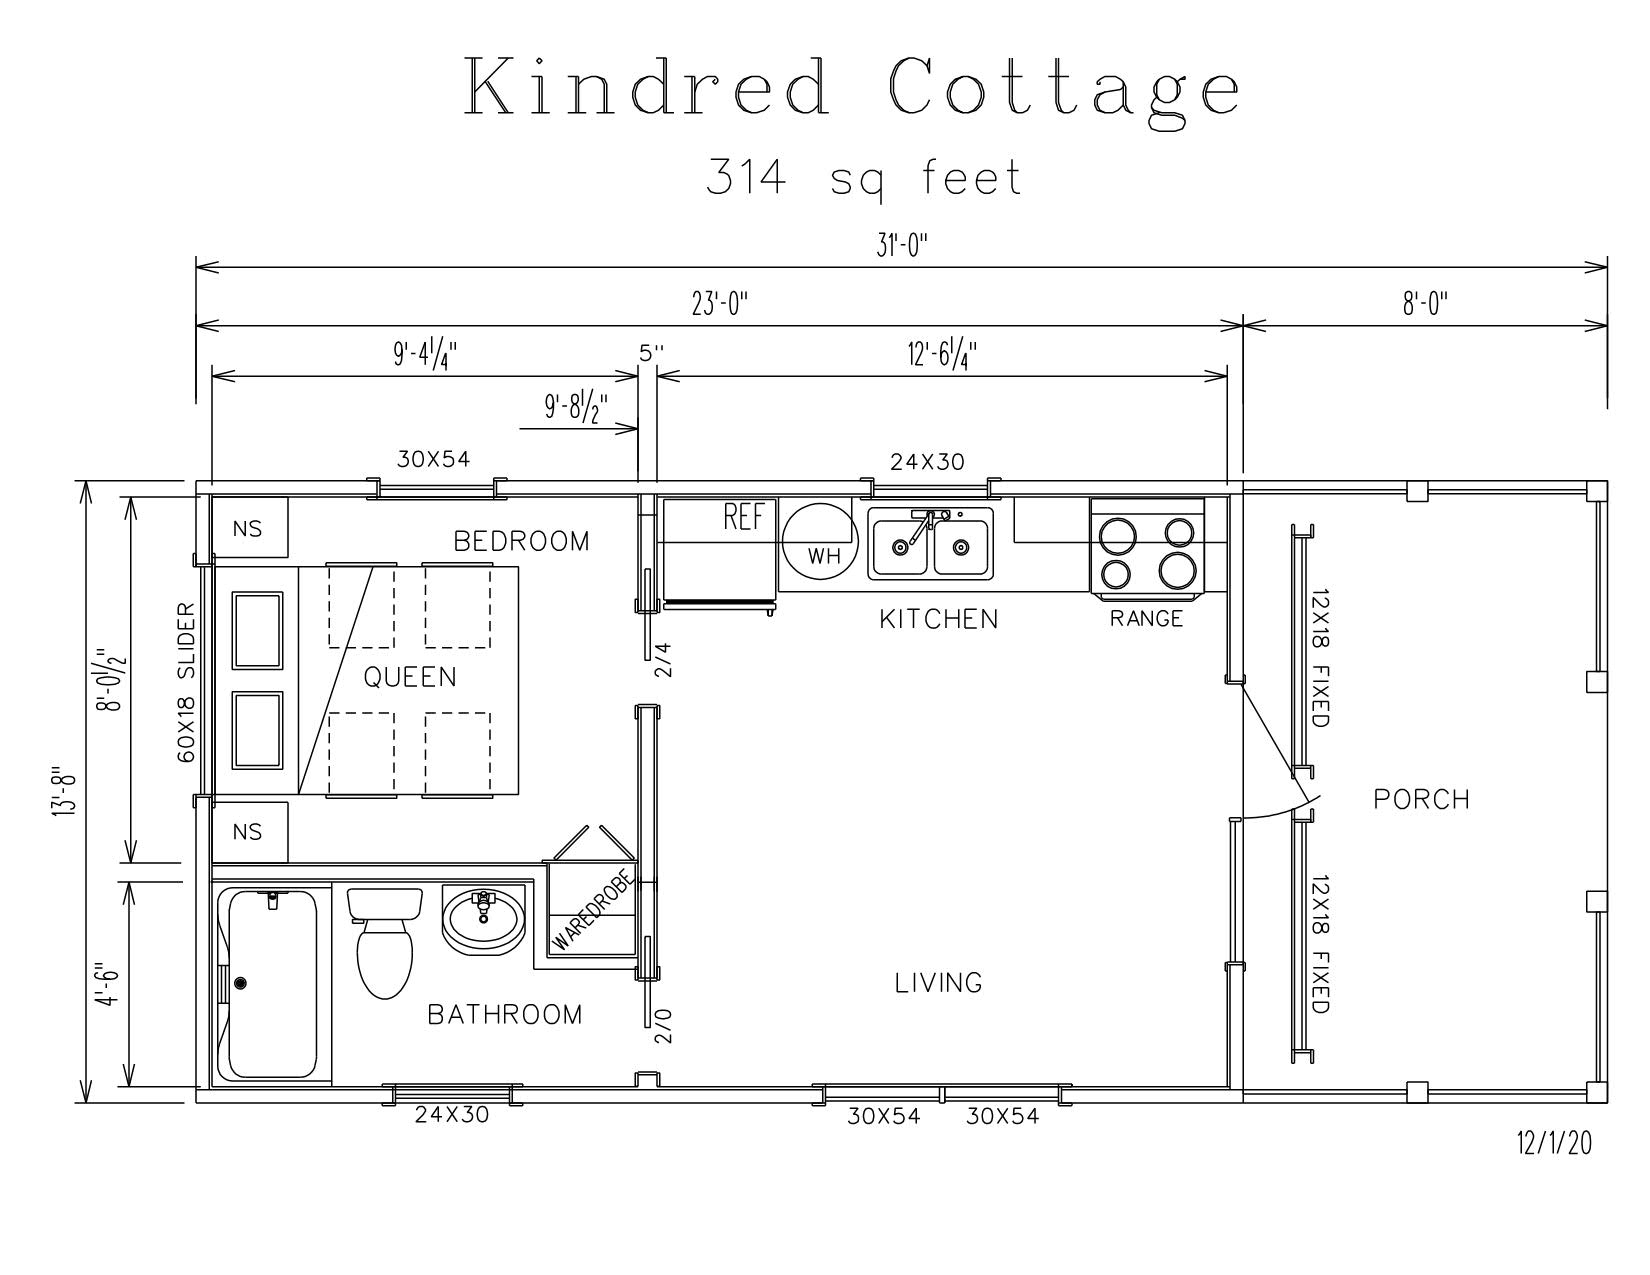 Kindred Cottage Park Model Log Cabin